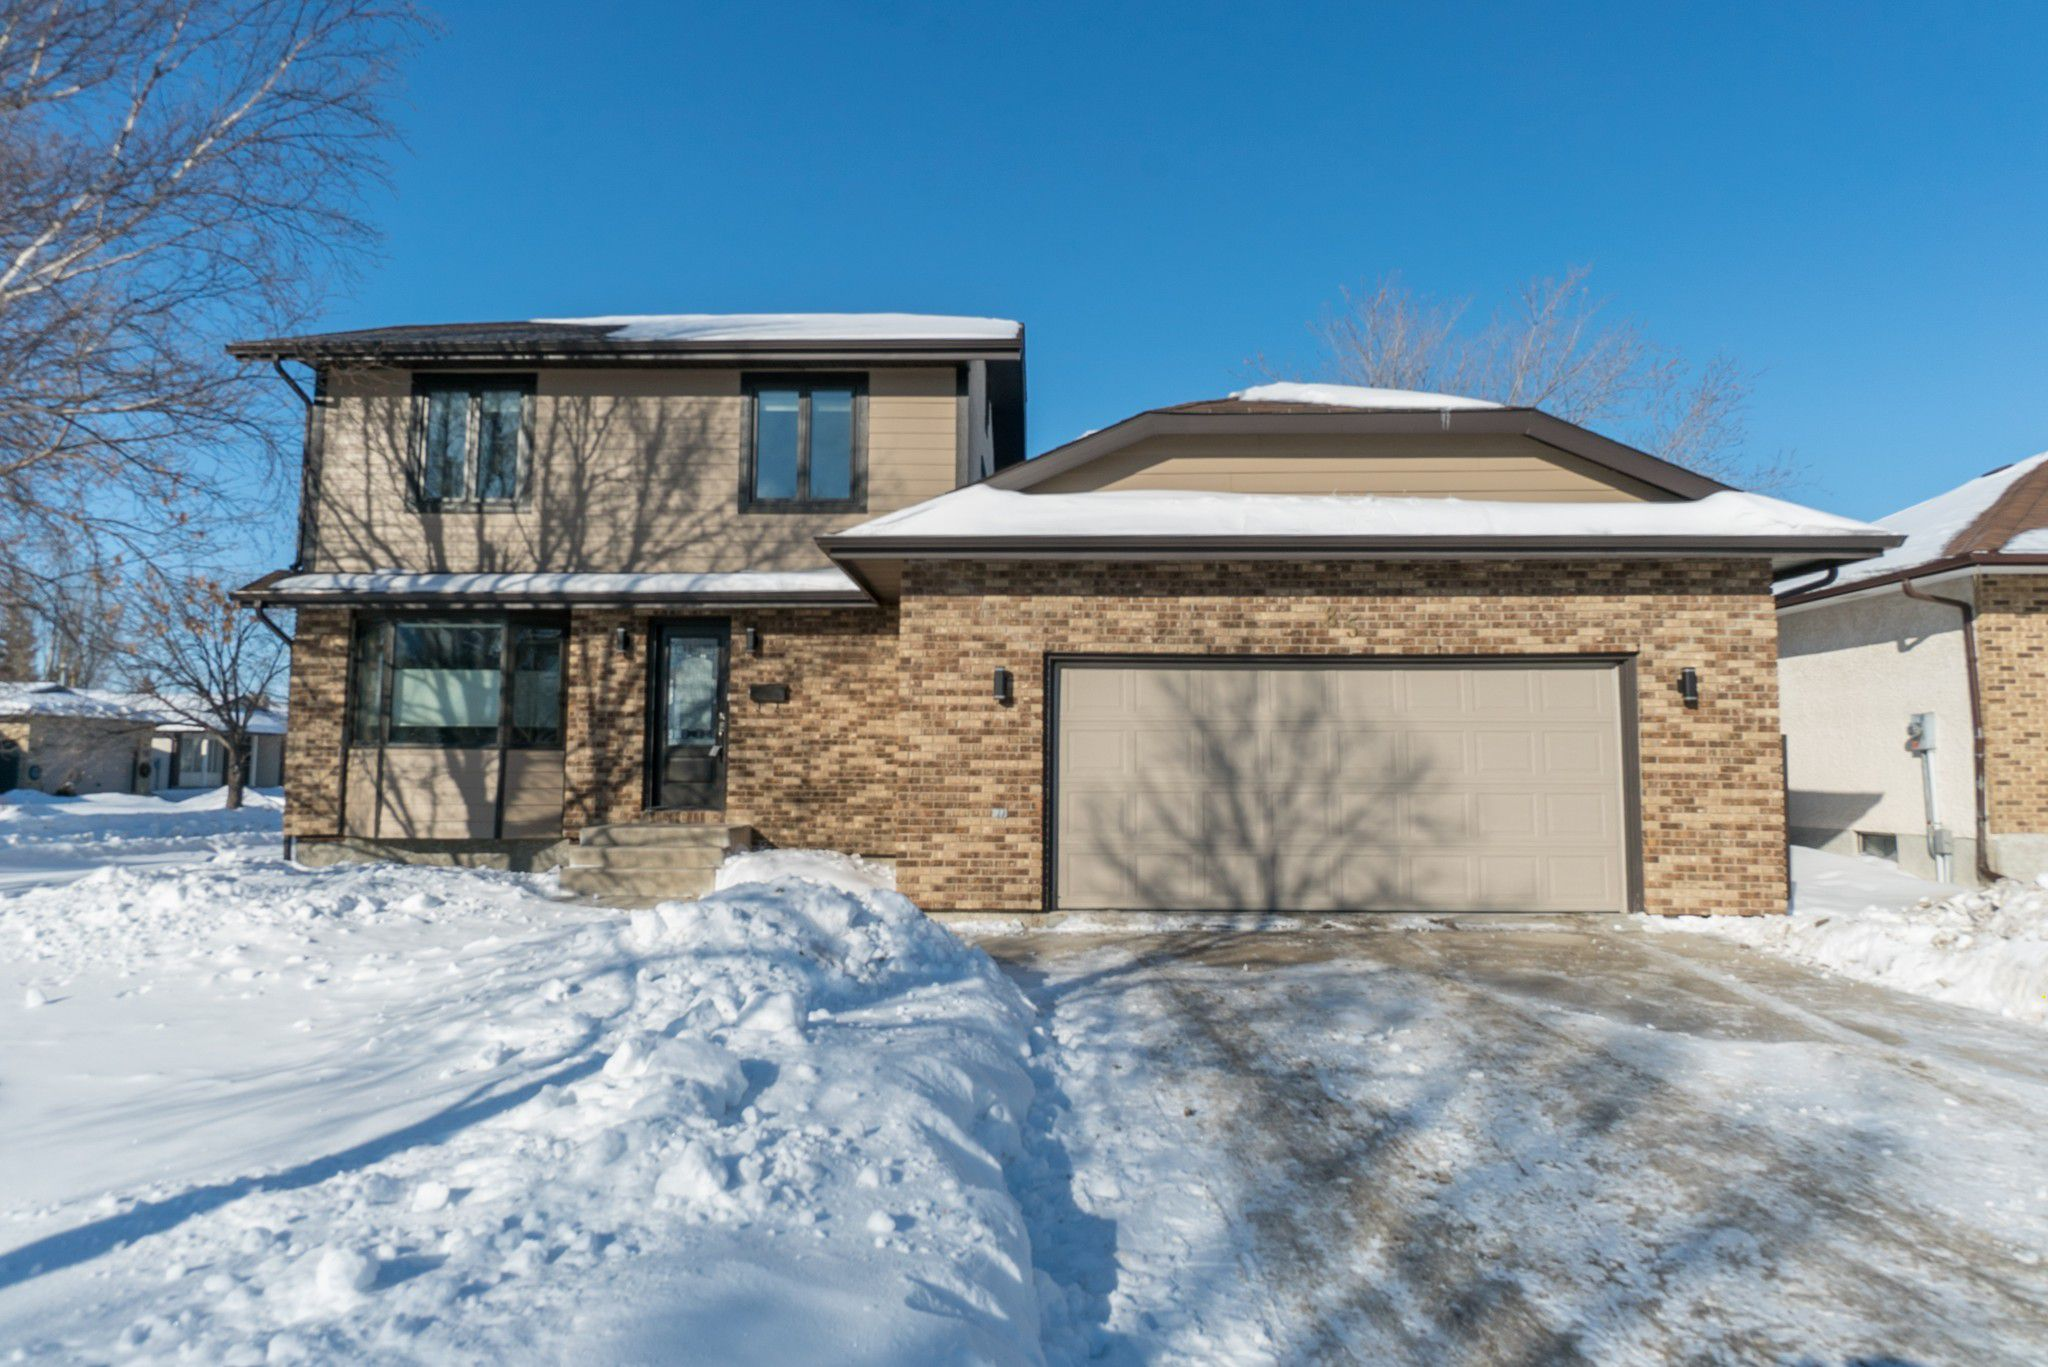 Main Photo: 85 Woodington Bay in Winnipeg: Linden Woods Residential for sale (1M)  : MLS®# 1904899